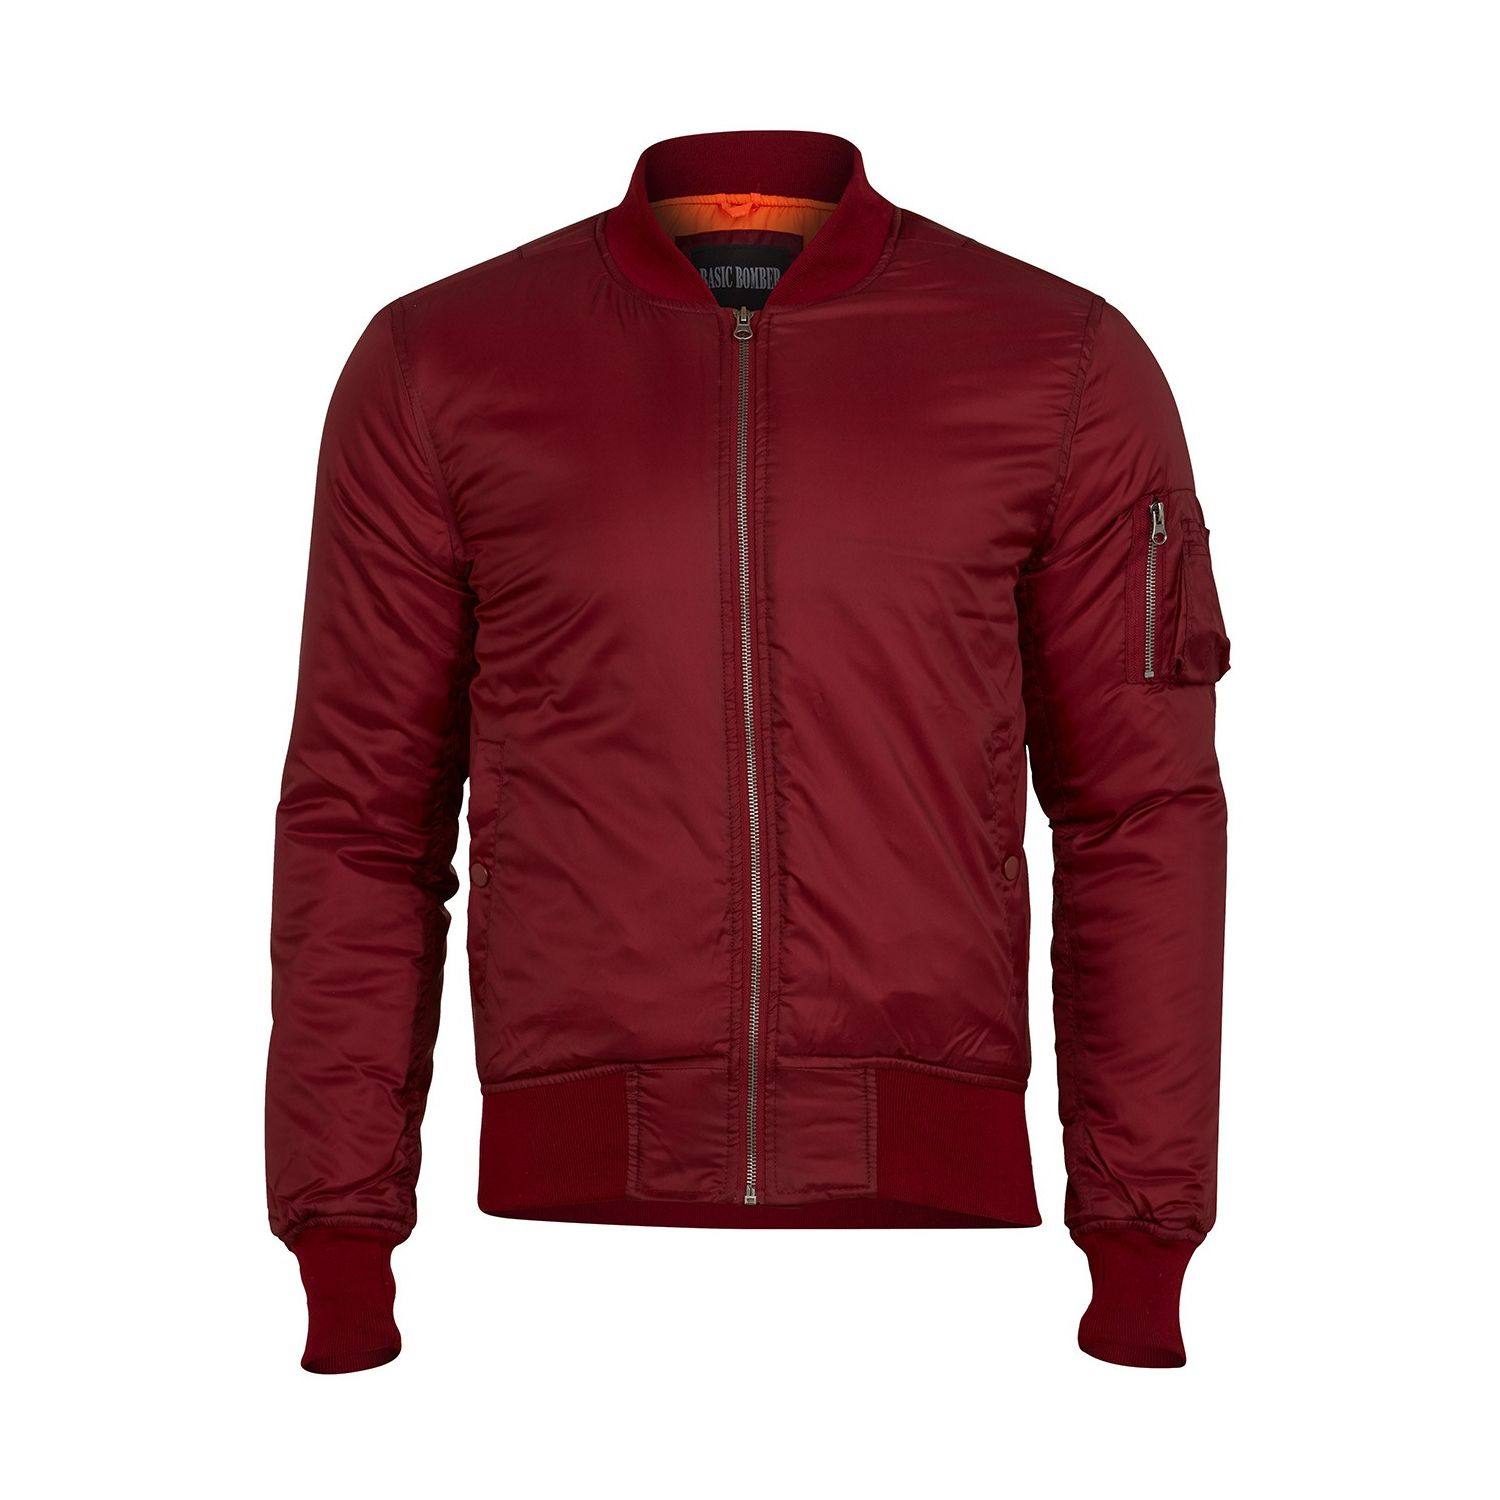 Jacket MA1 BOMBER basic BORDEAUX SURPLUS 20-3530-11 L-11